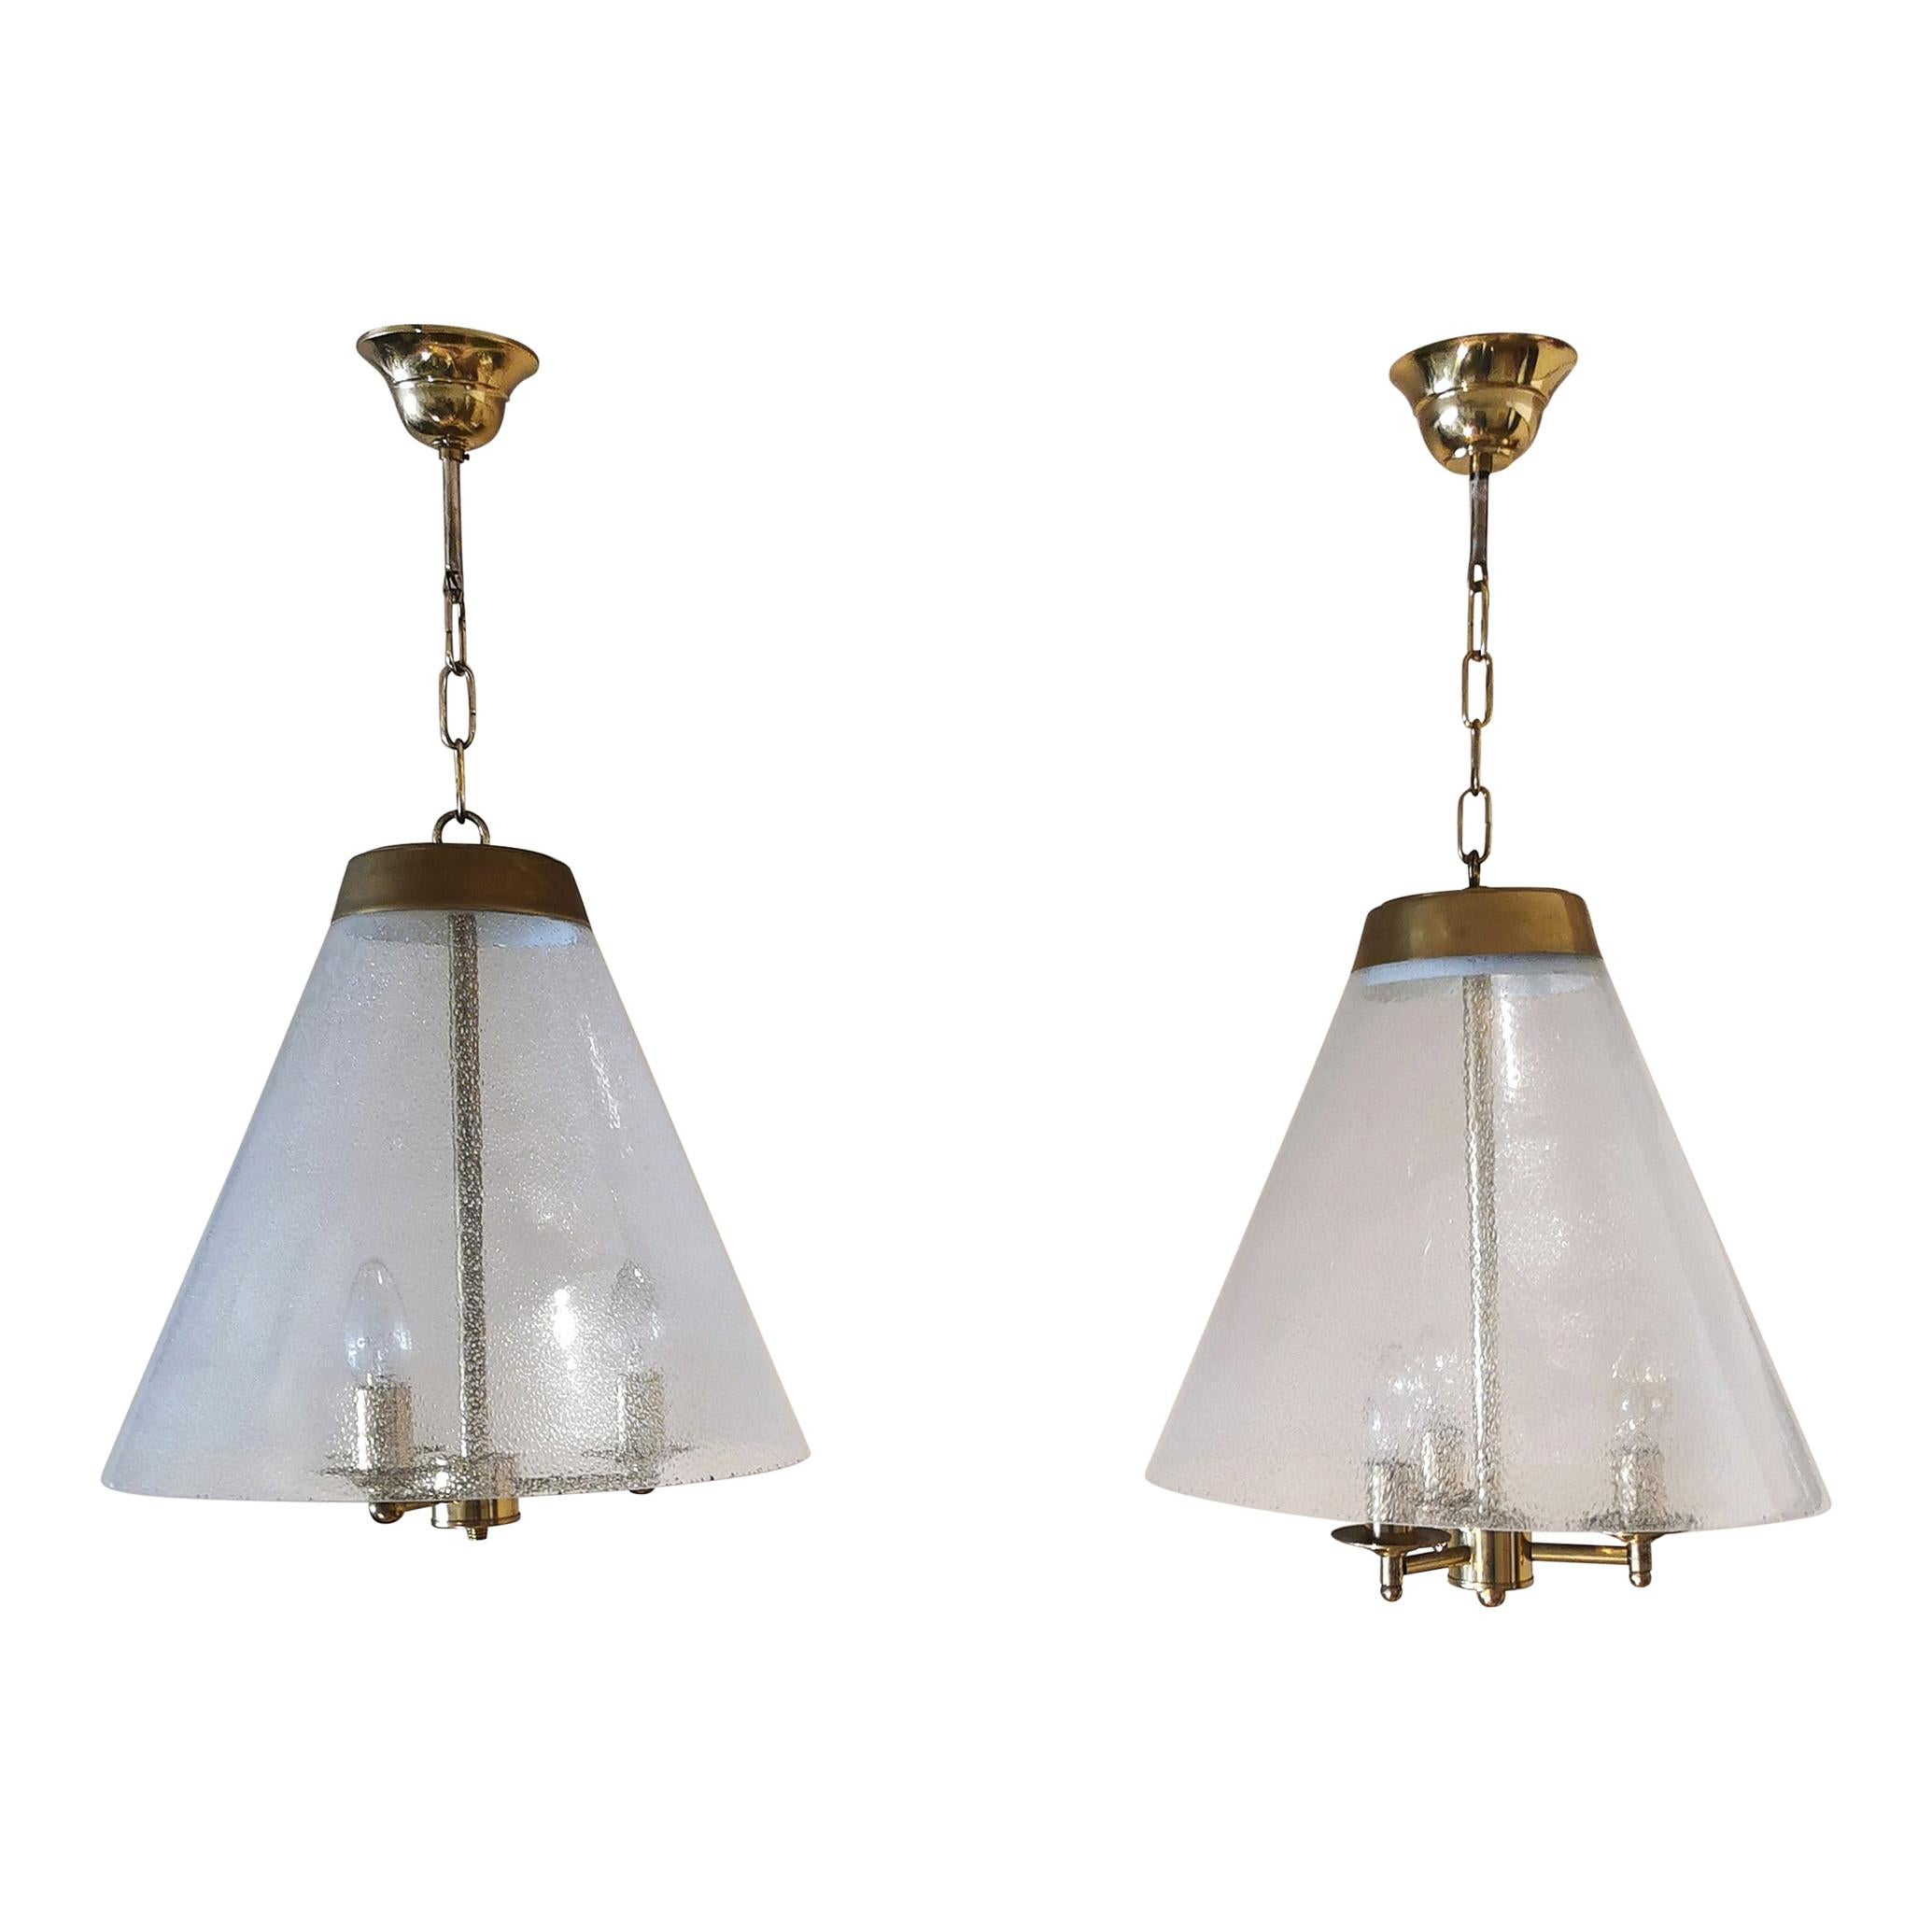 Mid Century Chandeliers Bubble Glass Brass in the Style of Venini Italy 1950s